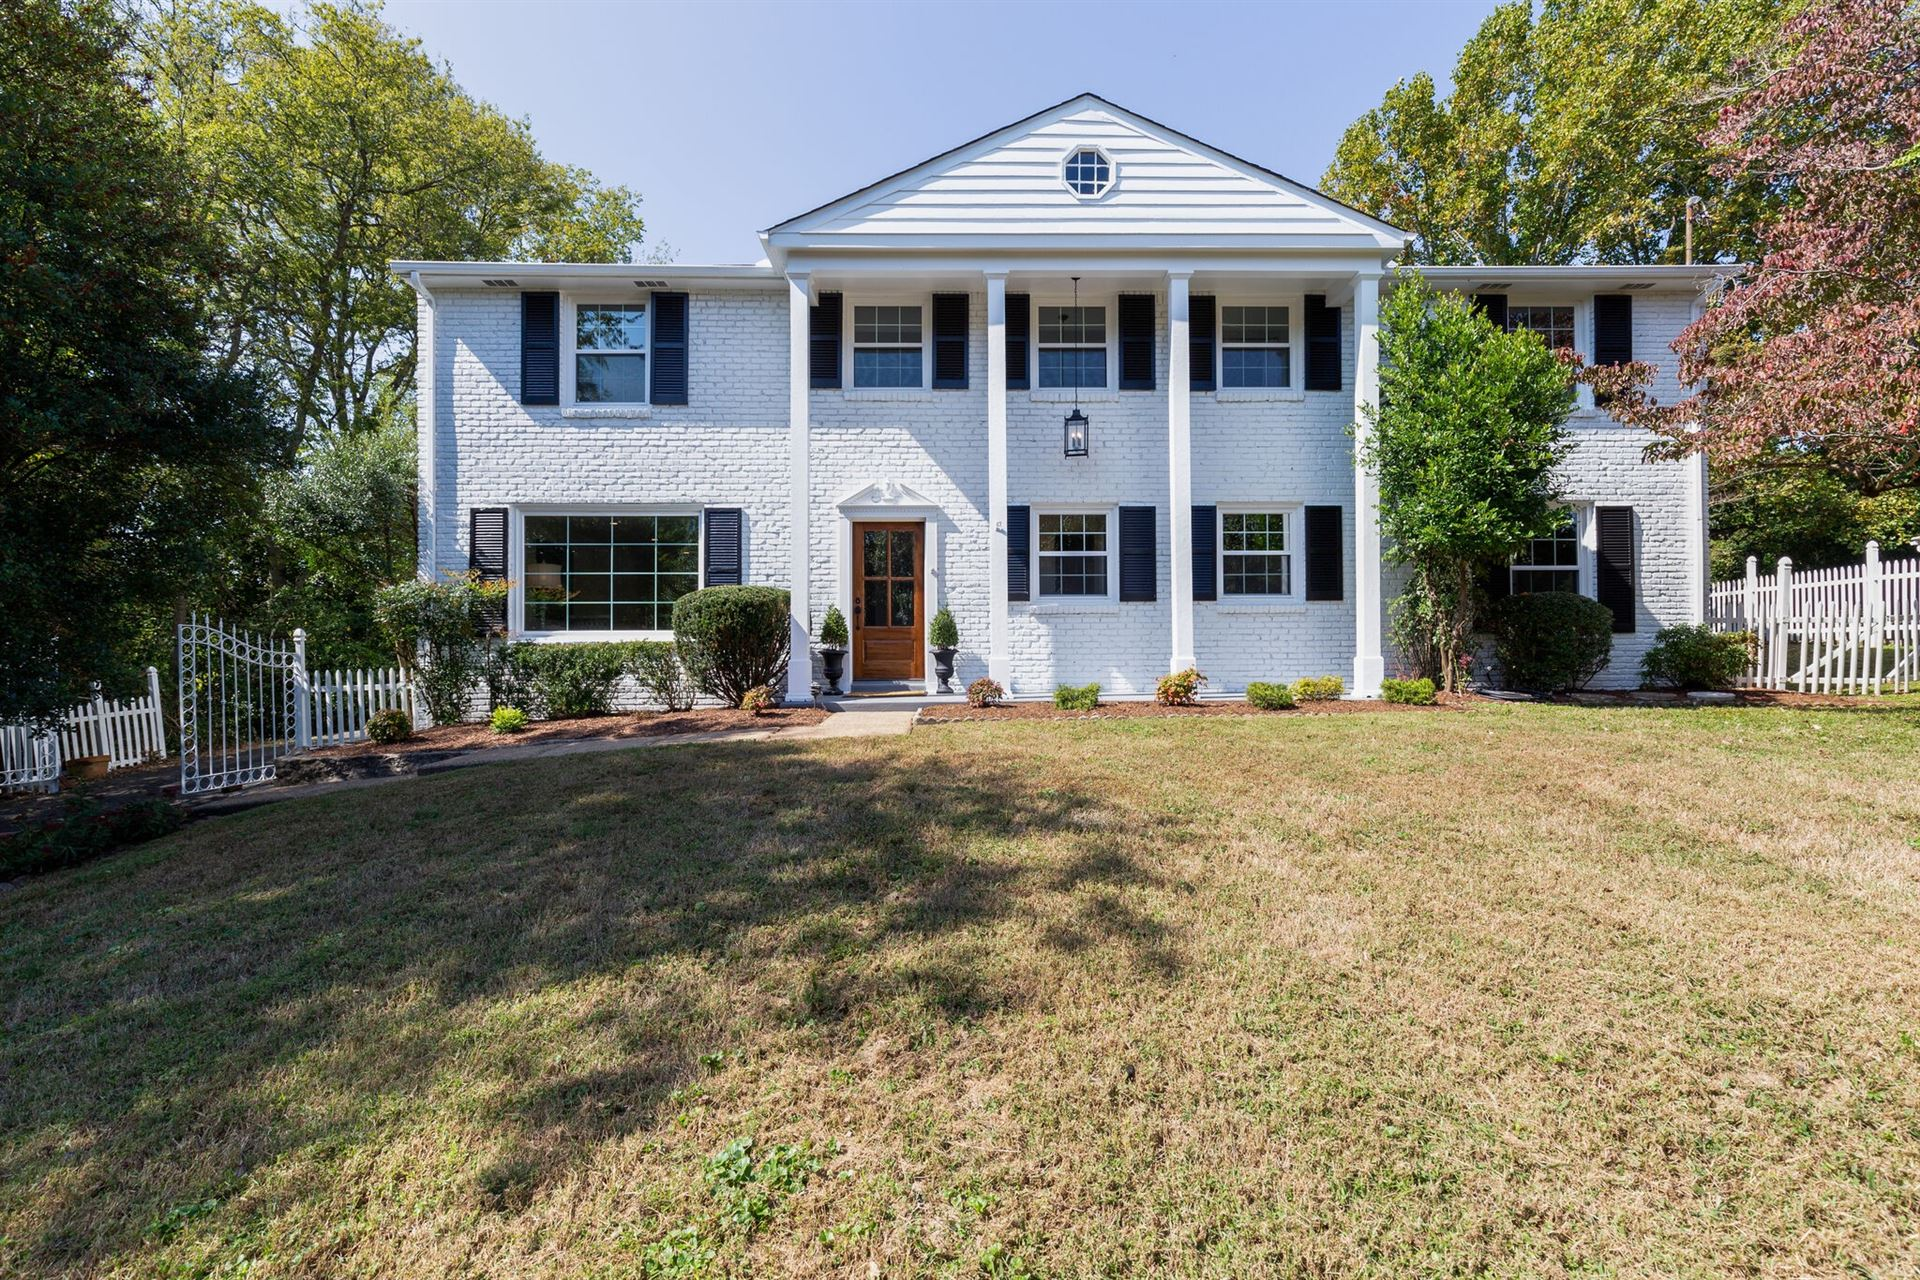 4811 Overcrest Dr, Nashville, TN 37211 - MLS#: 2190075